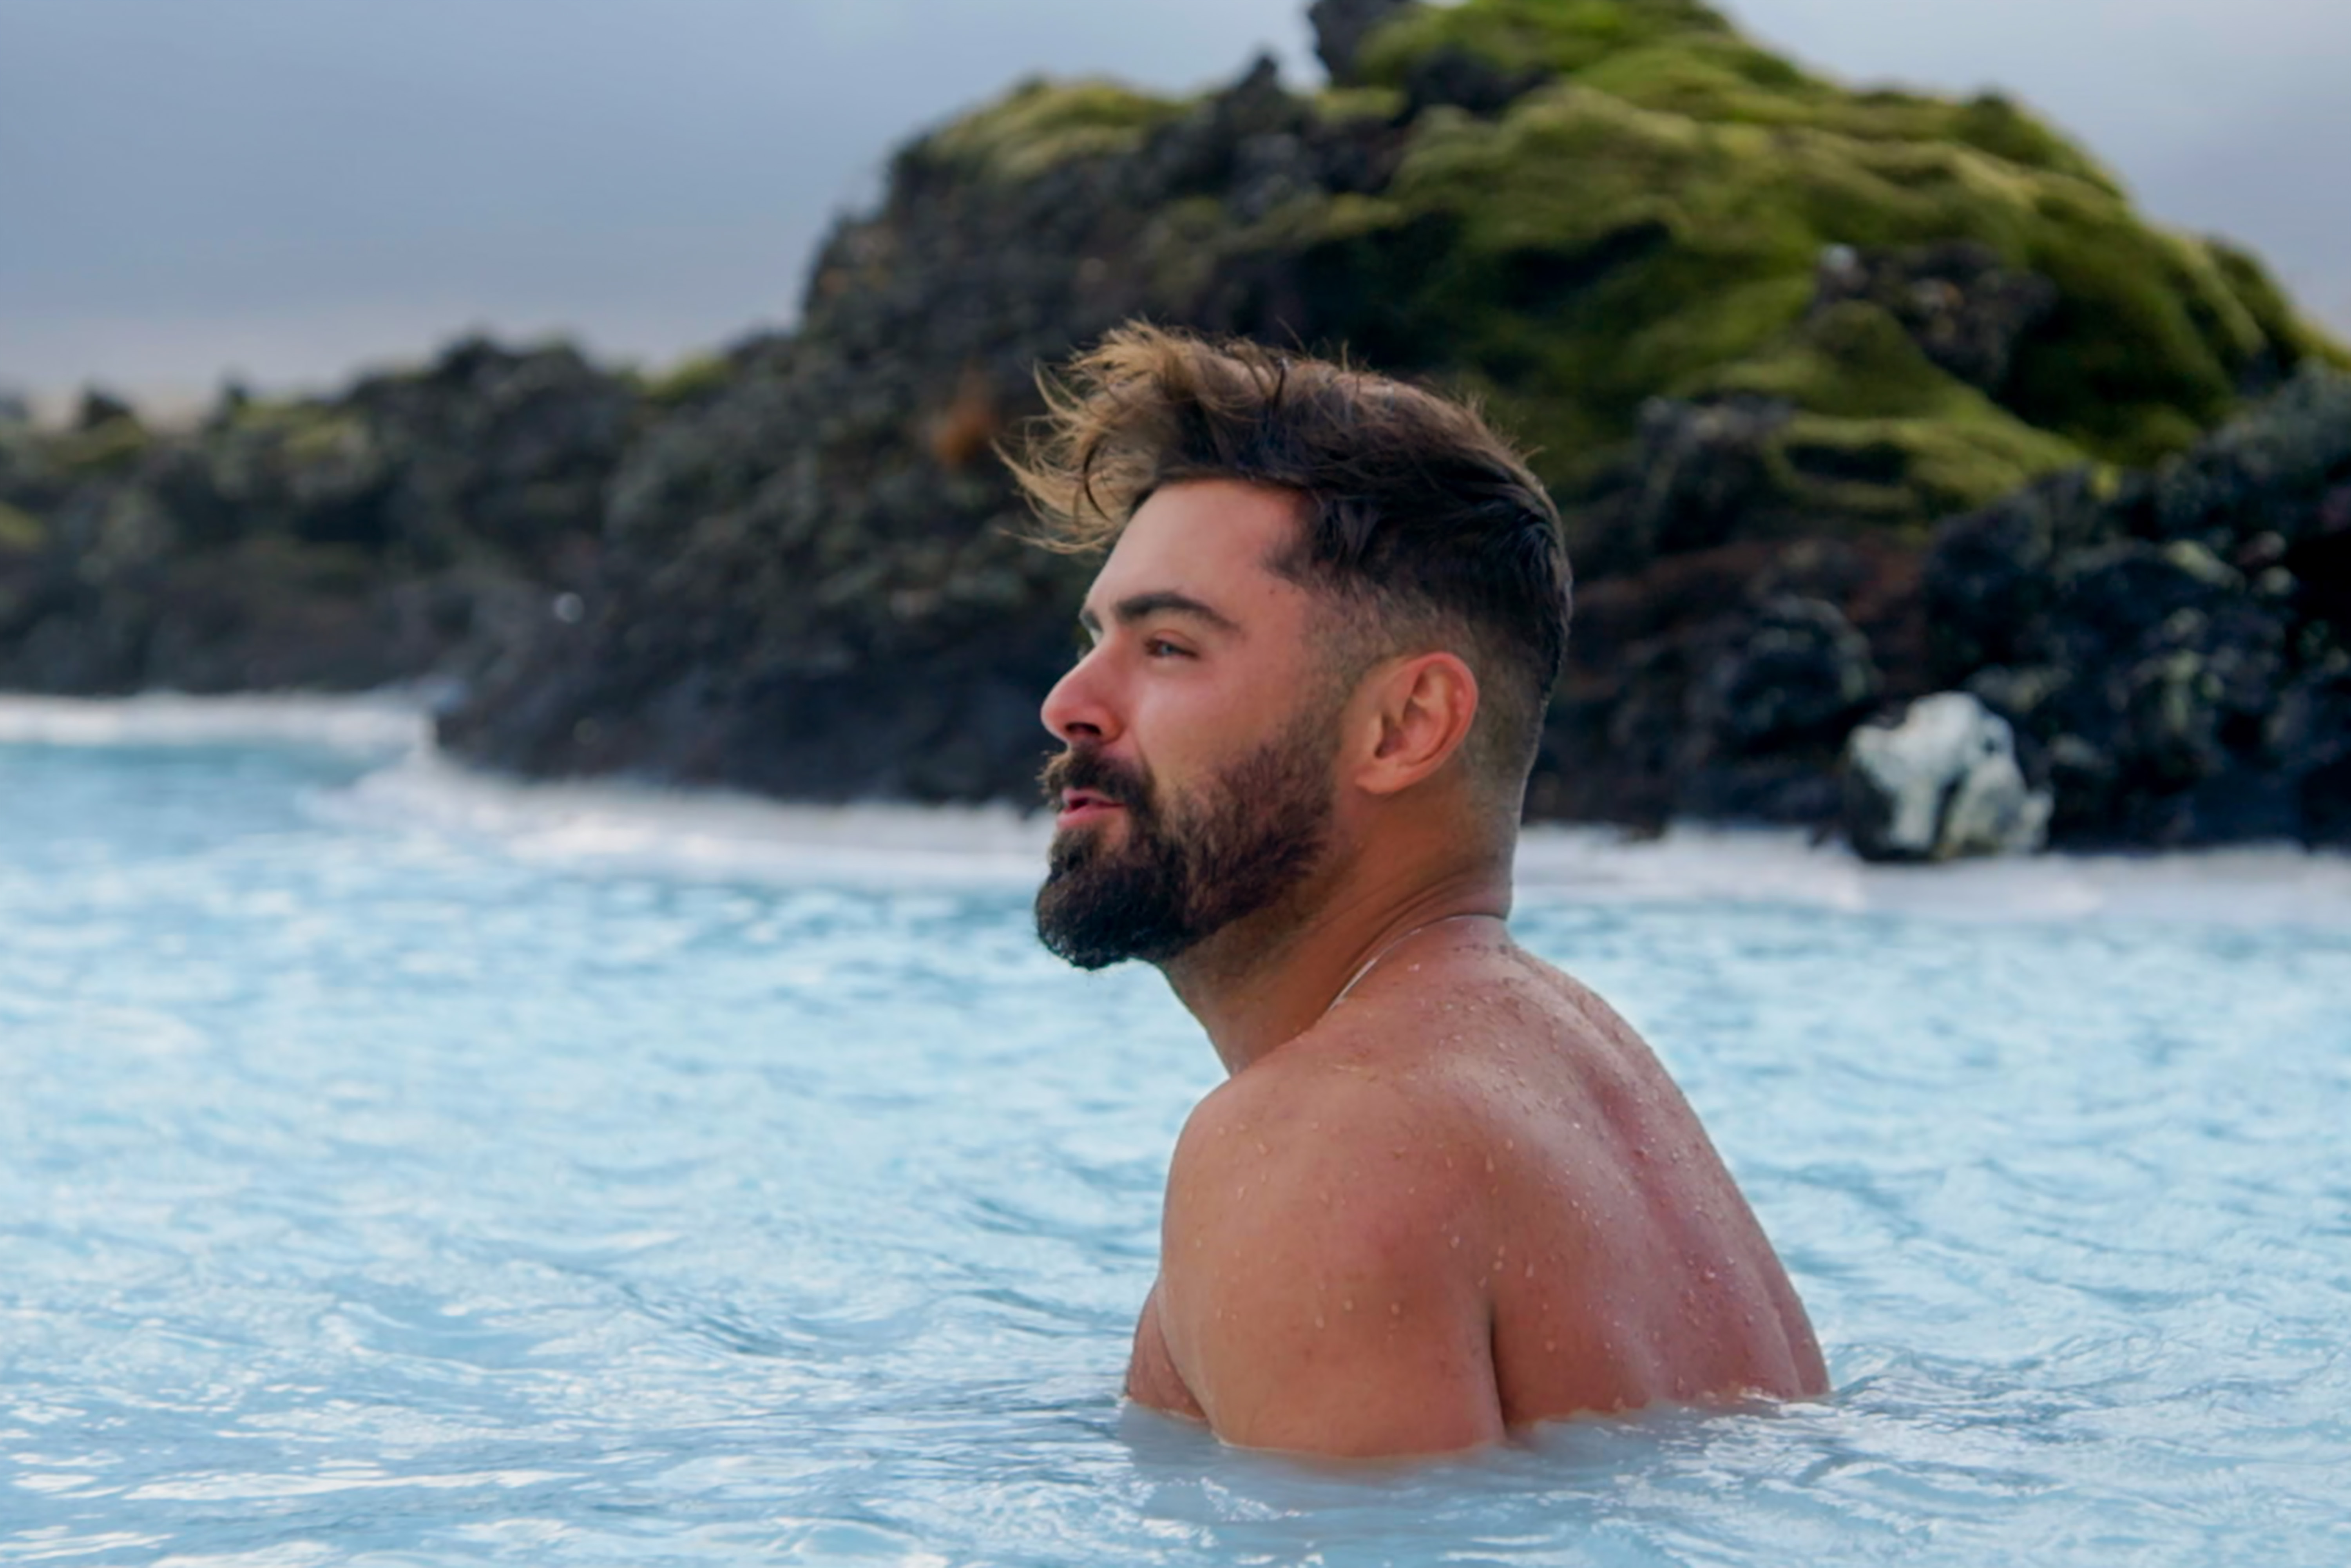 Zac Efron, a white man, is in a hot spring in Iceland.